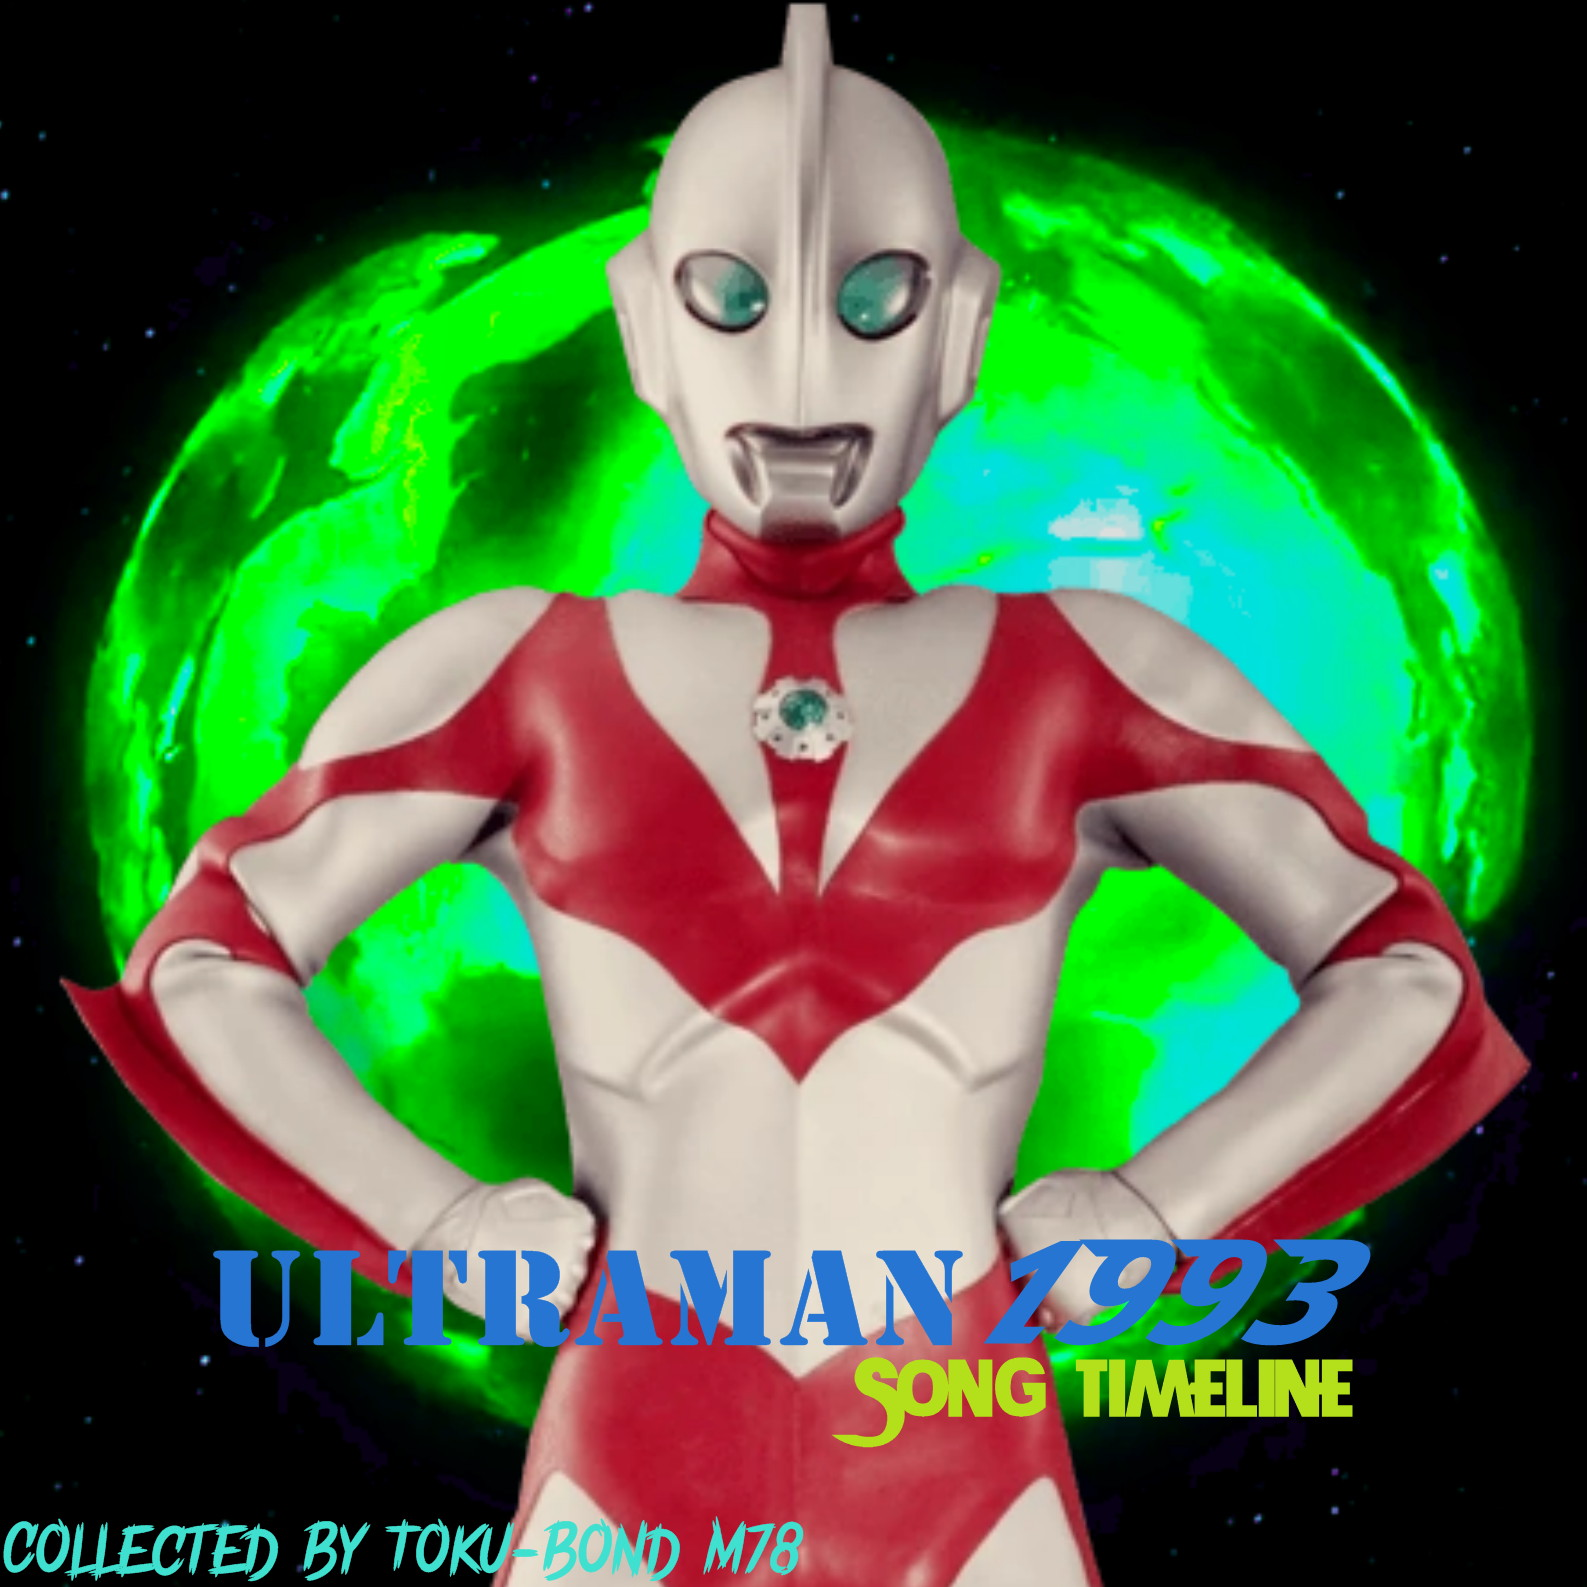 Im Rider Song Download: Download All Ultraman Song & Music Complete